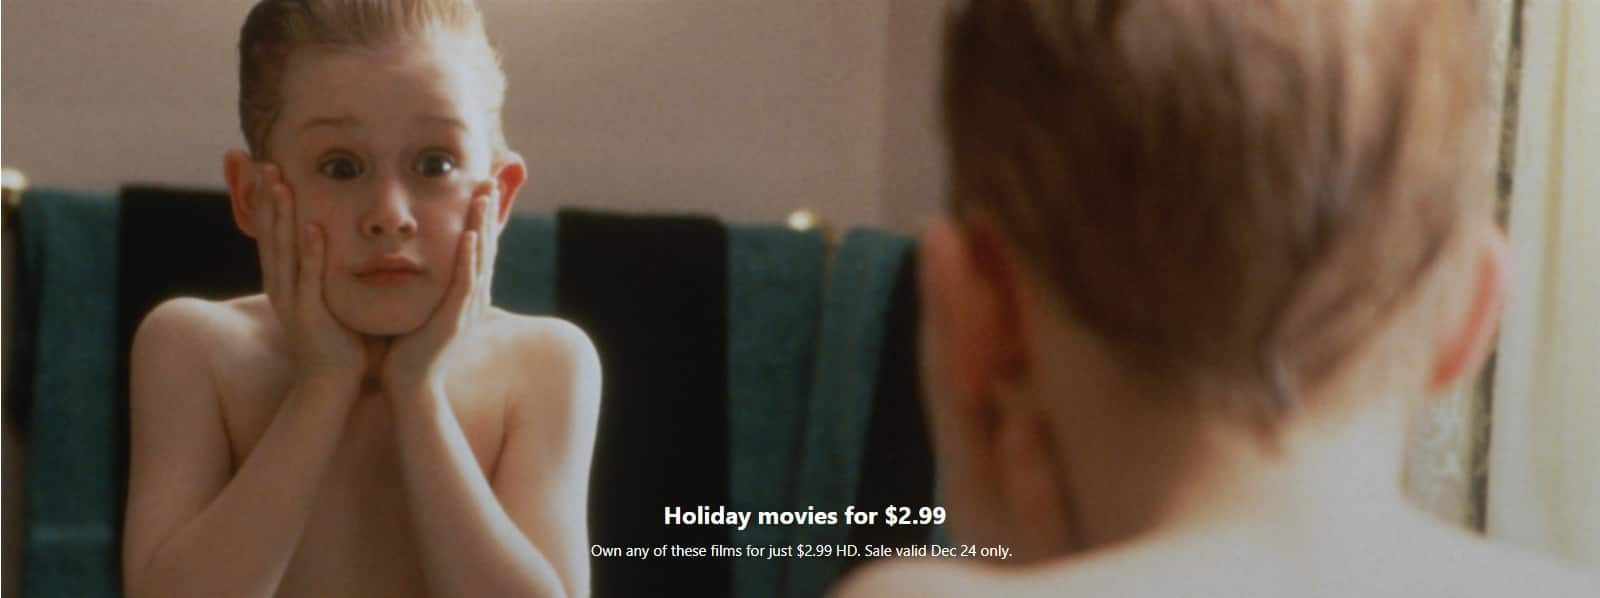 $3 digital movies to own in HD @ the Microsoft Store - Home Alone, Die Hard and more